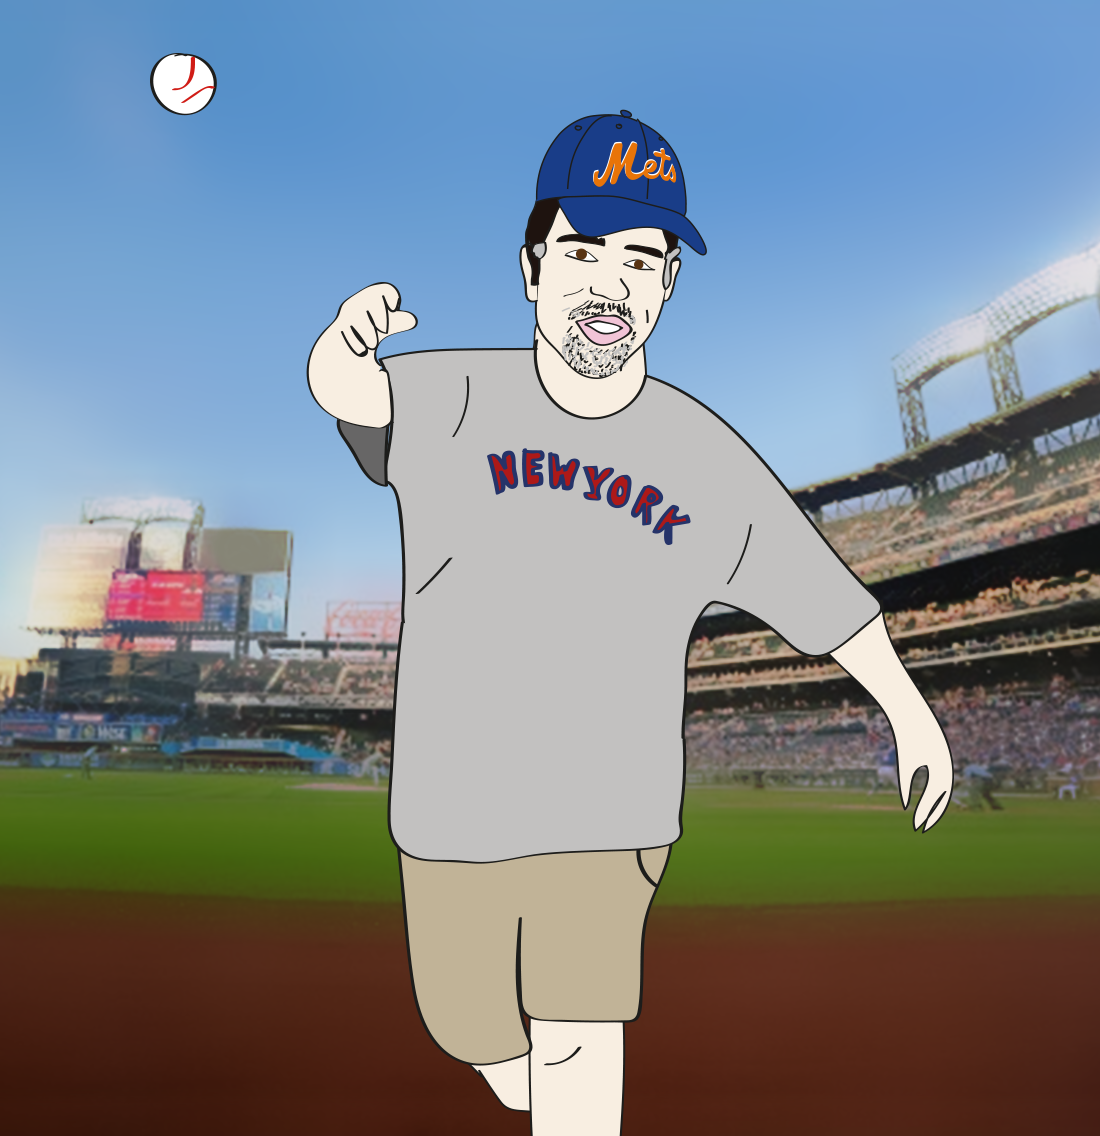 Gary's First Pitch illustration